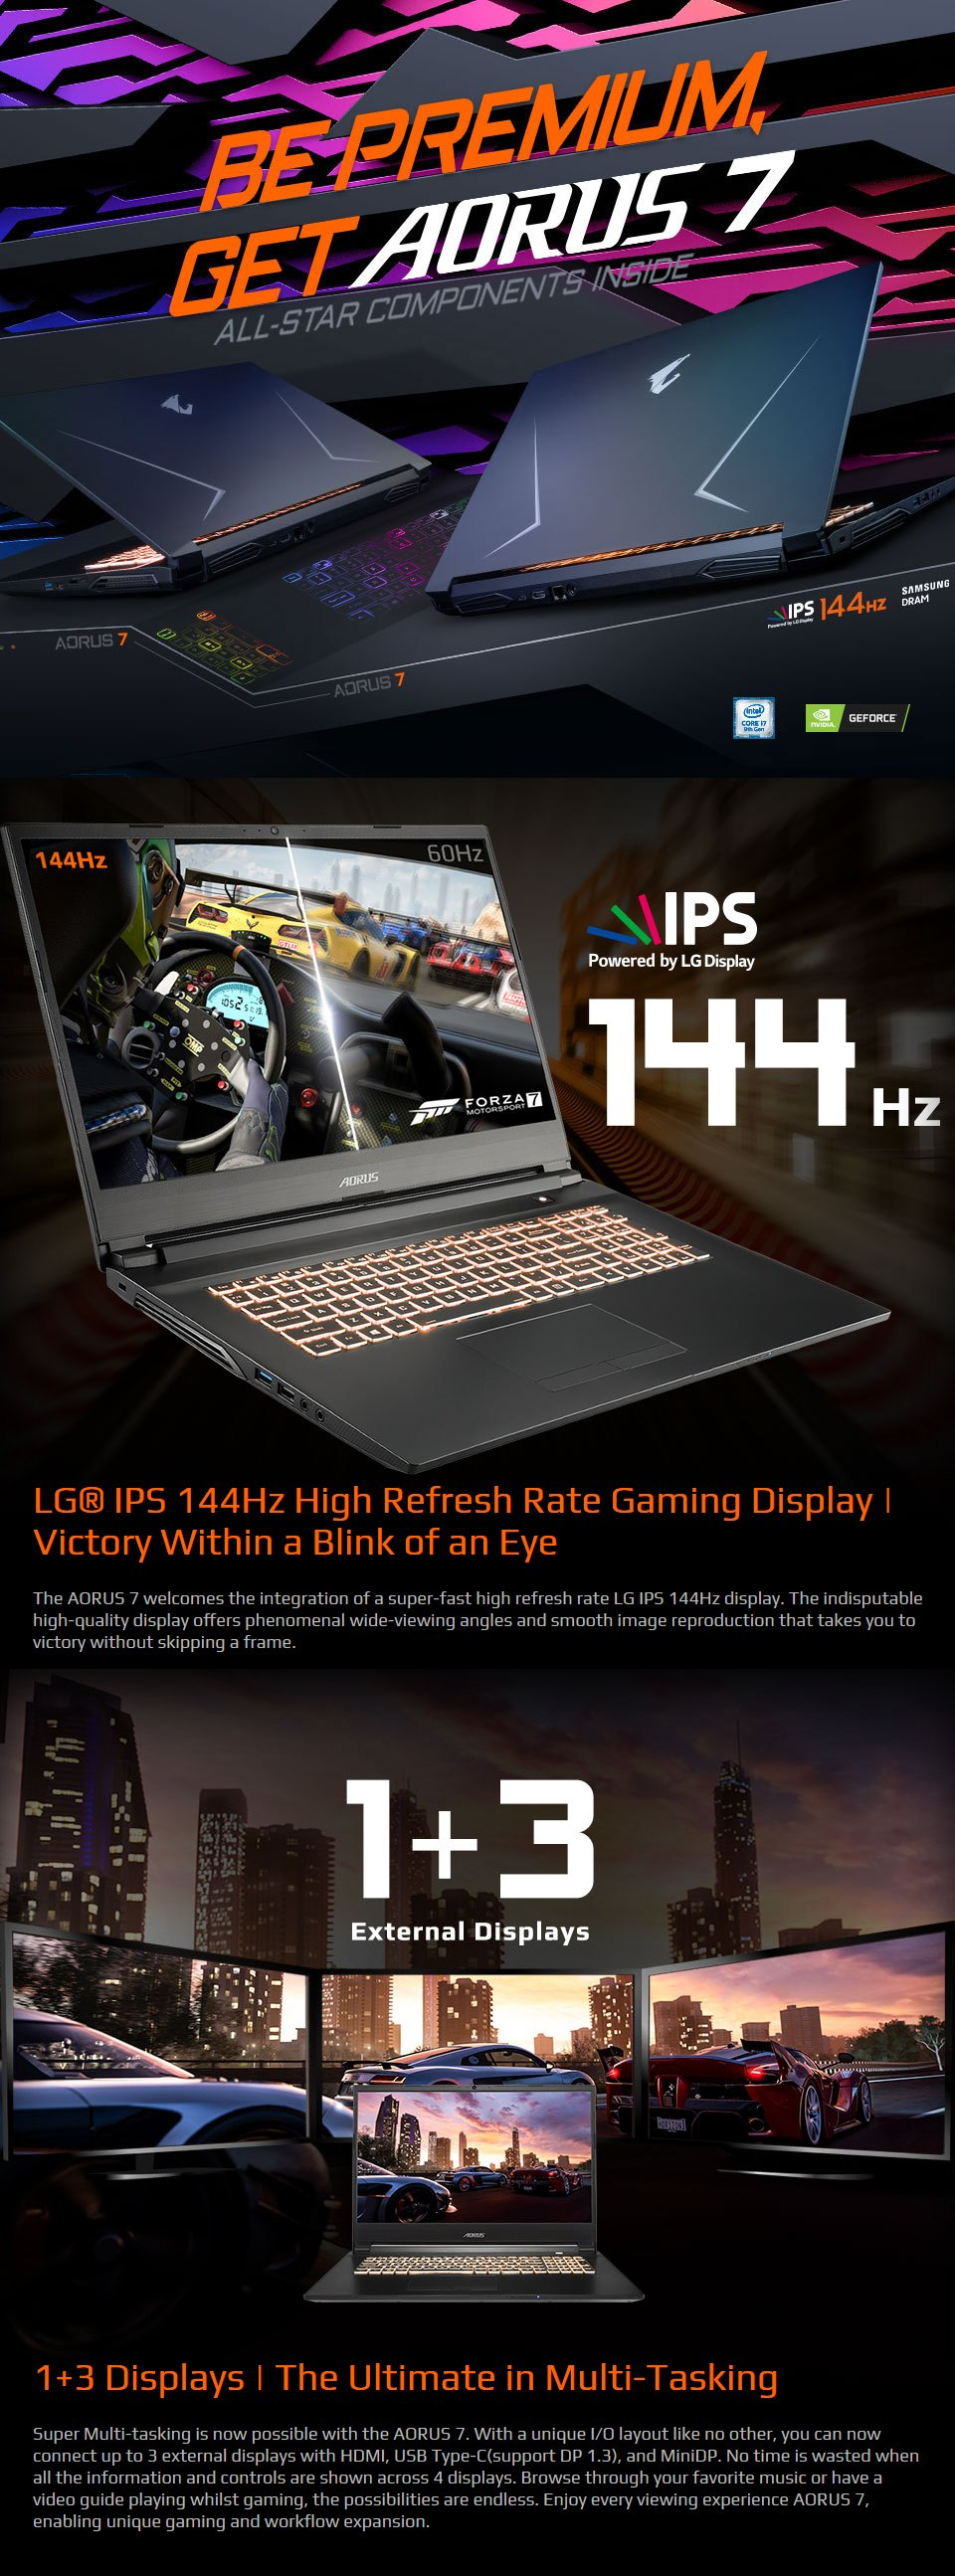 Gigabyte AORUS 7 Core i7 GTX 1660 Ti 17.3in 144Hz Gaming Laptop [SA] features